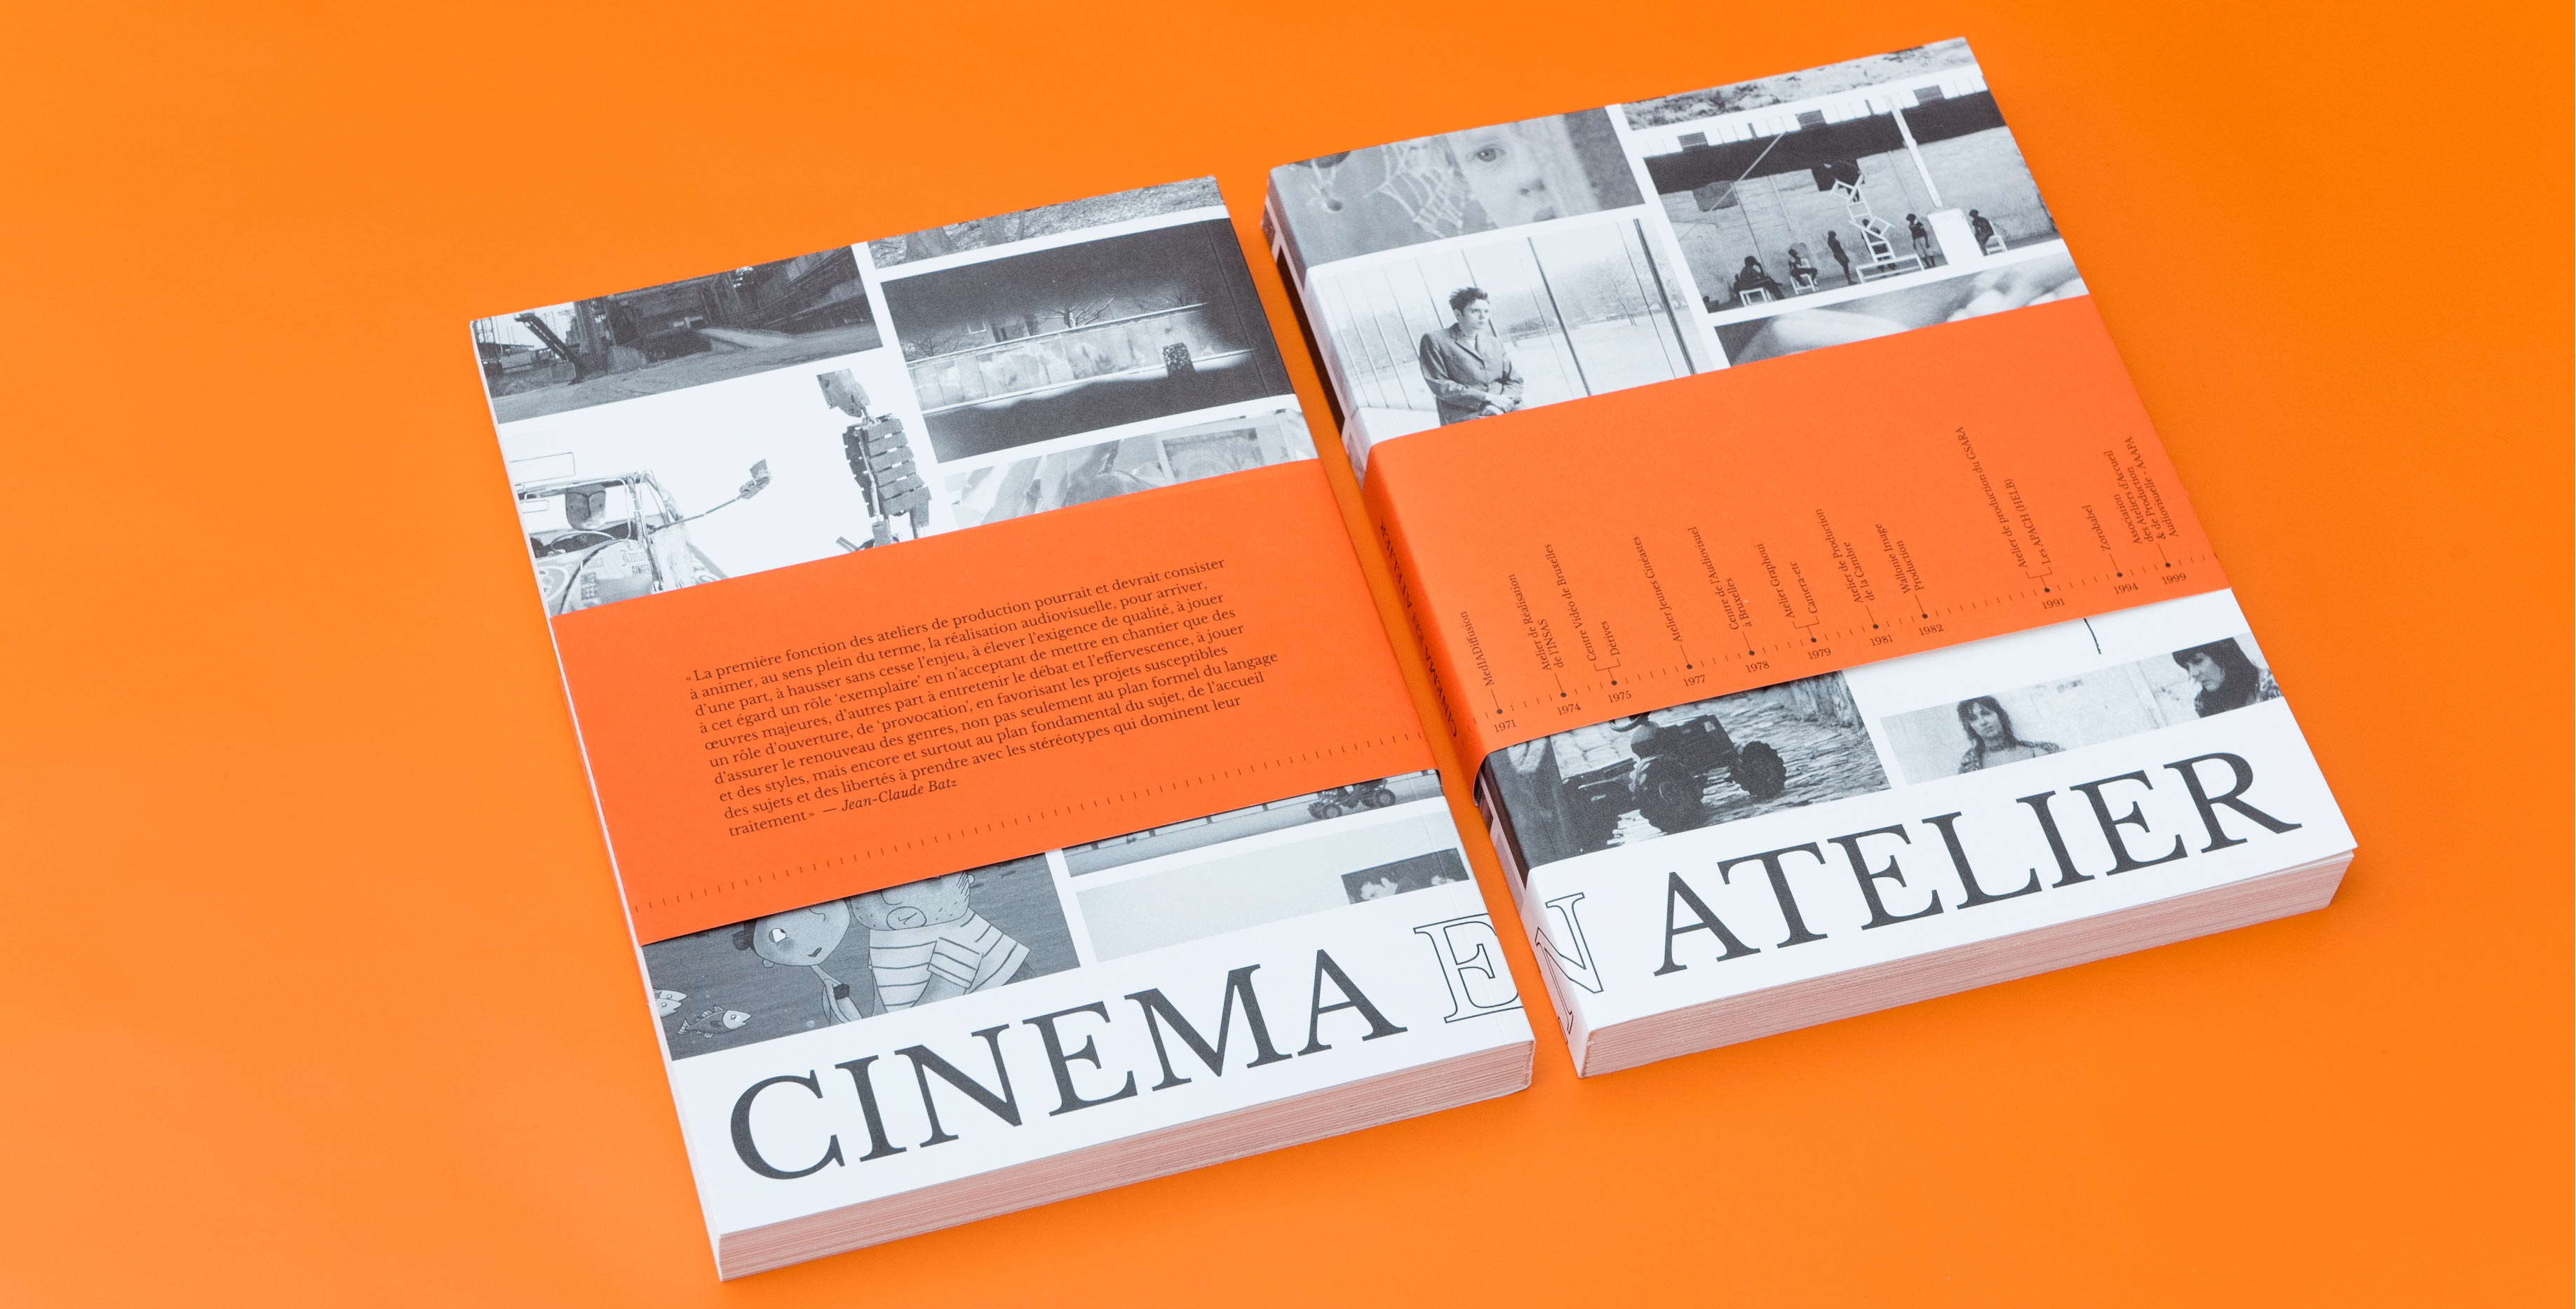 Cinema en Atelier Publication